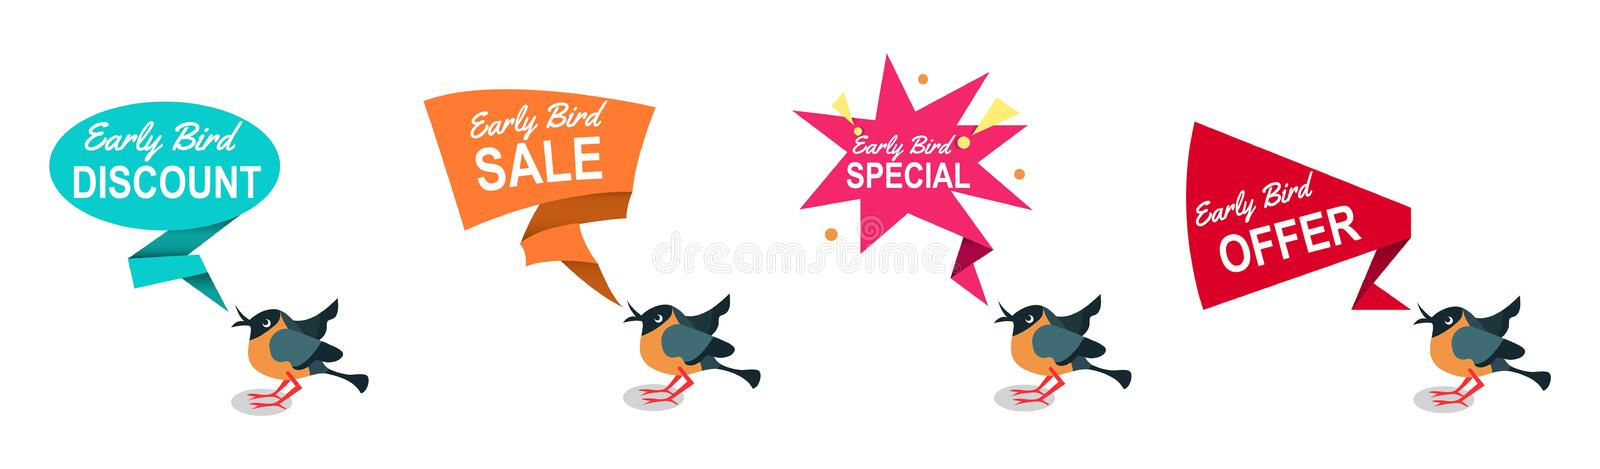 Early bird discounts and sales banners set isolated on white background. Early bird promotions. Vector illustration royalty free illustration